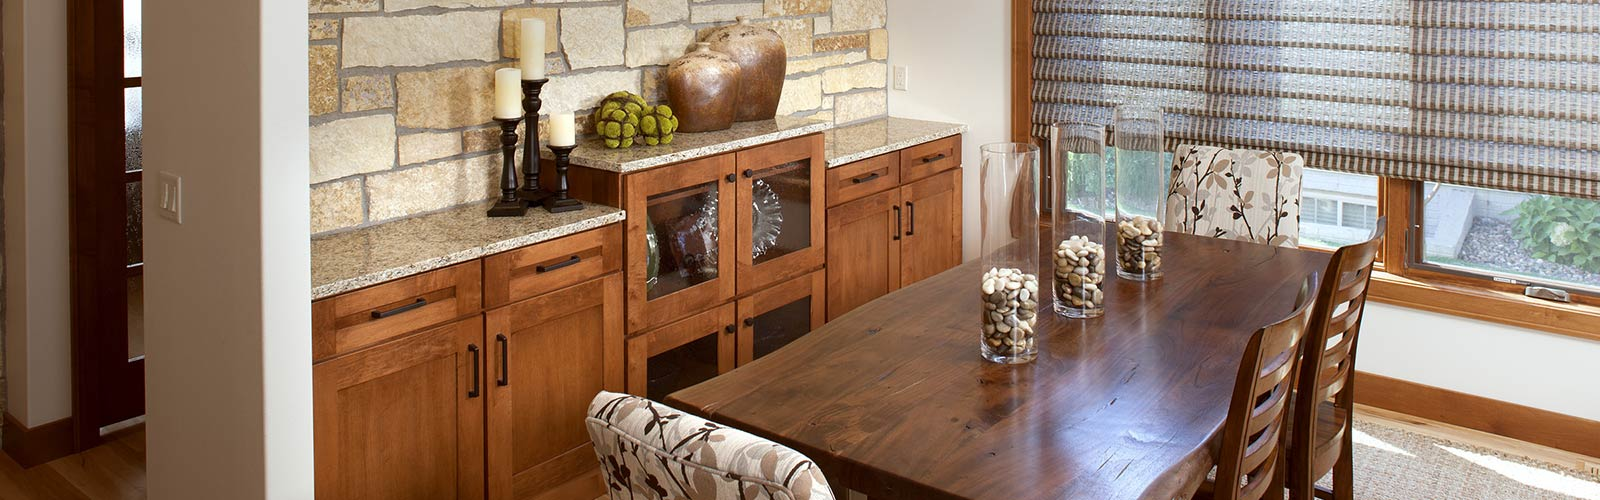 Charmant Cabinets, Countertops And Accessories.